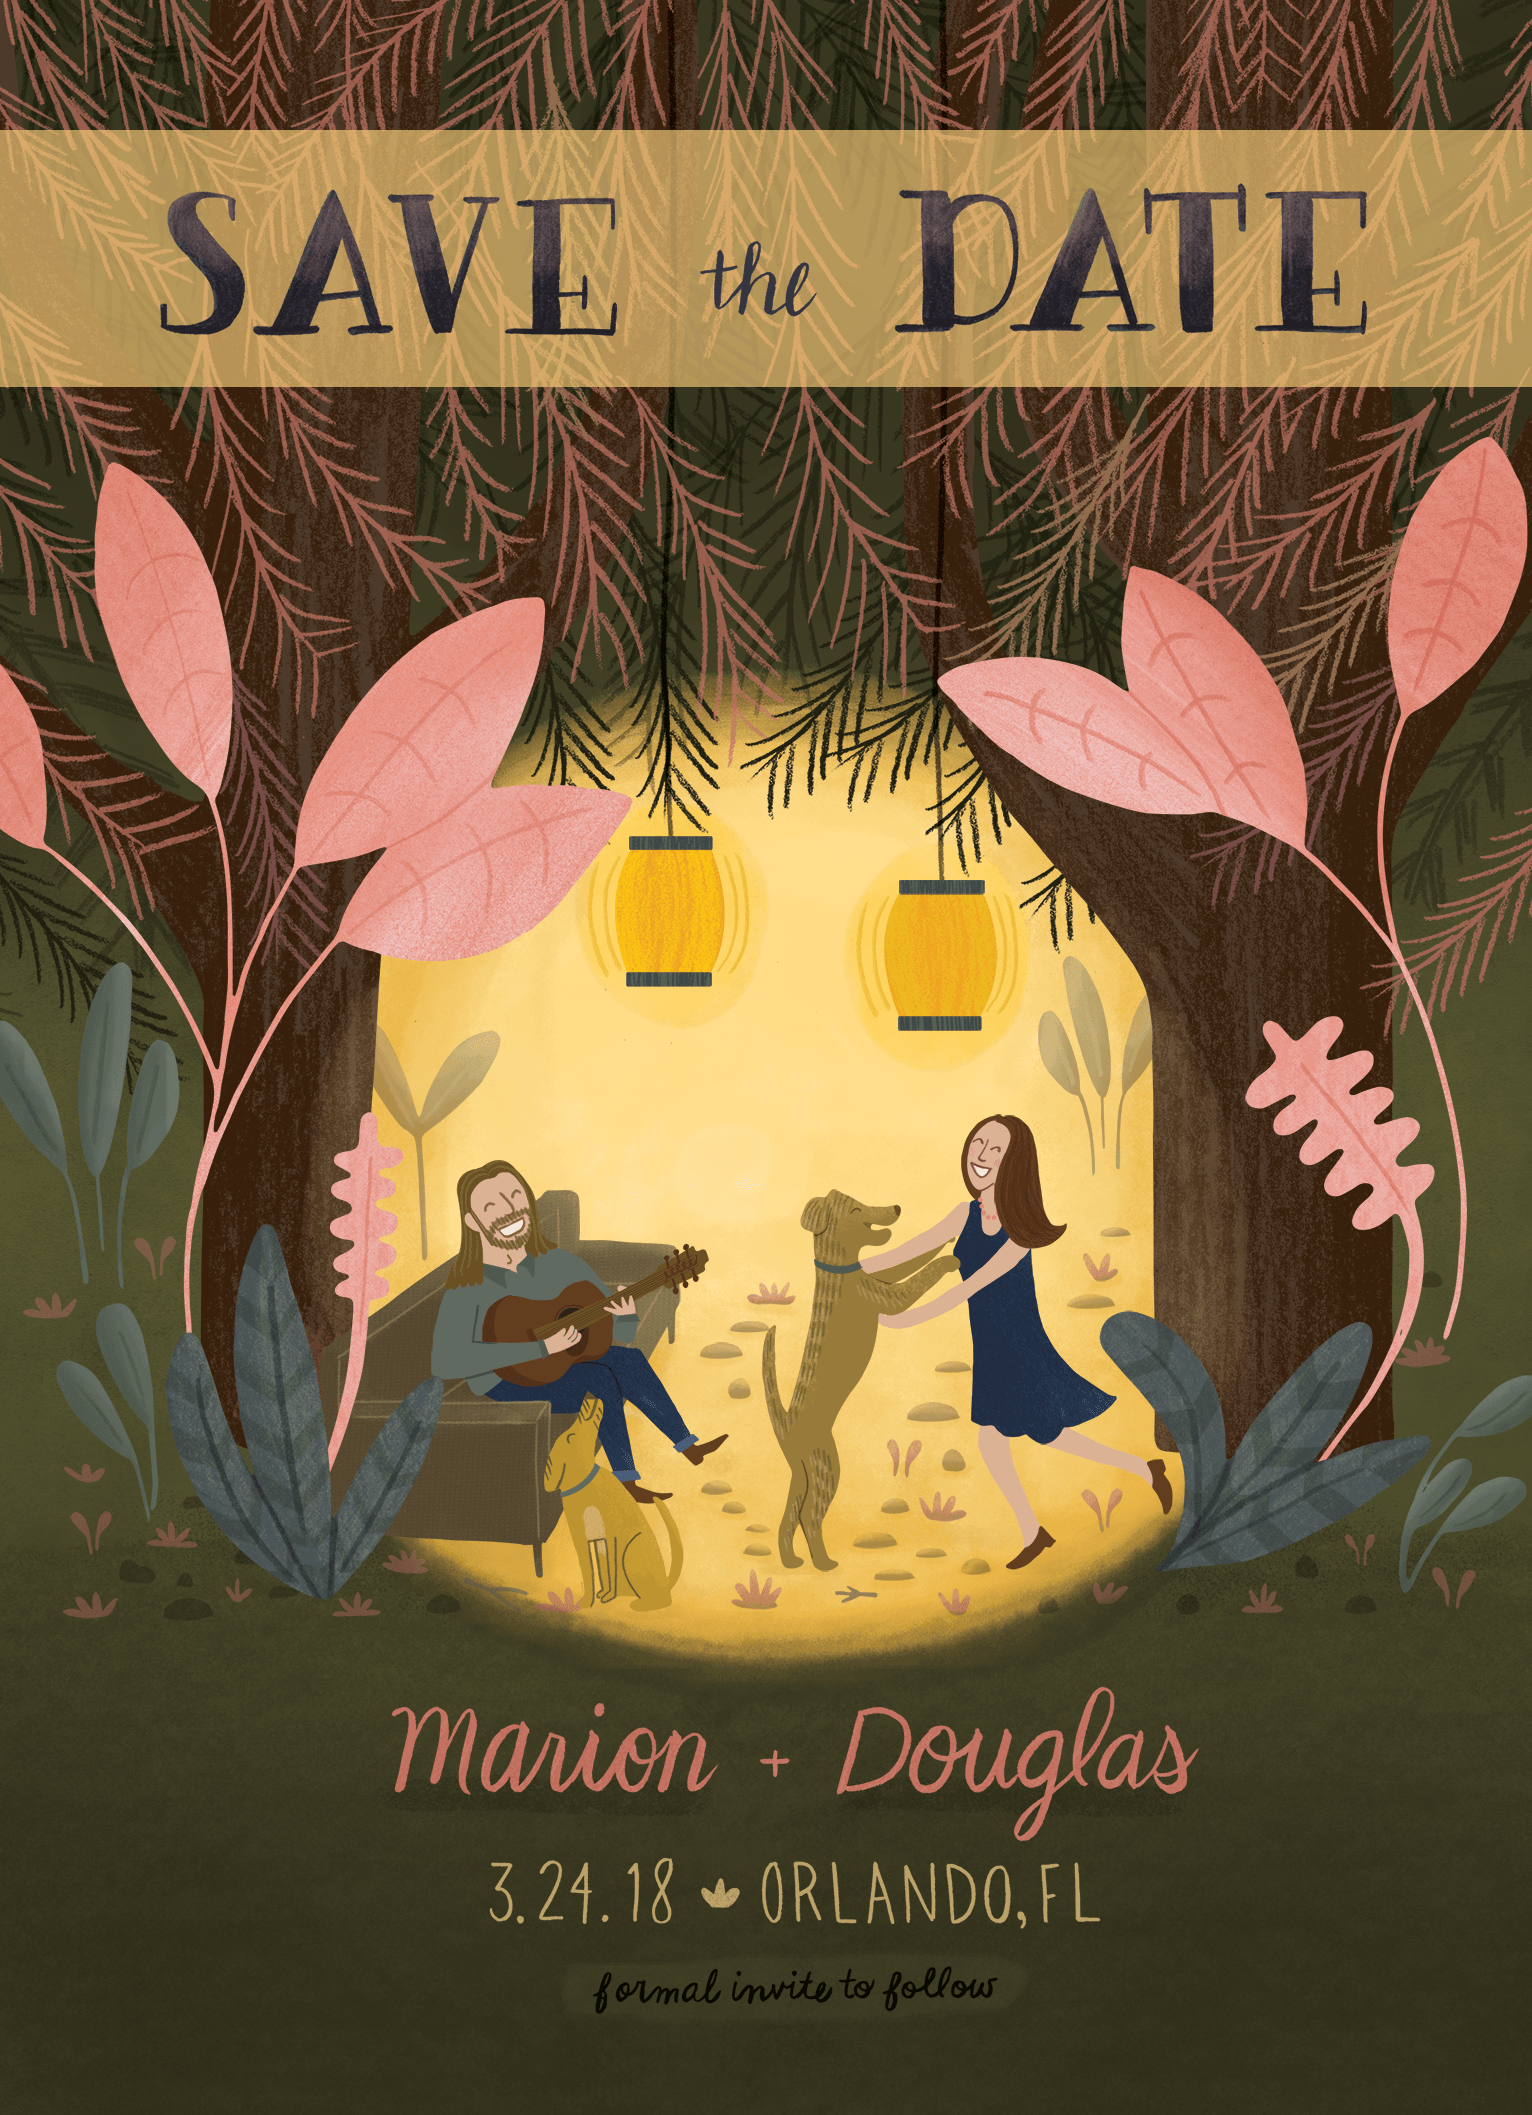 natalie-marion-wedding-save-the-date-dogs-couple-happy.png